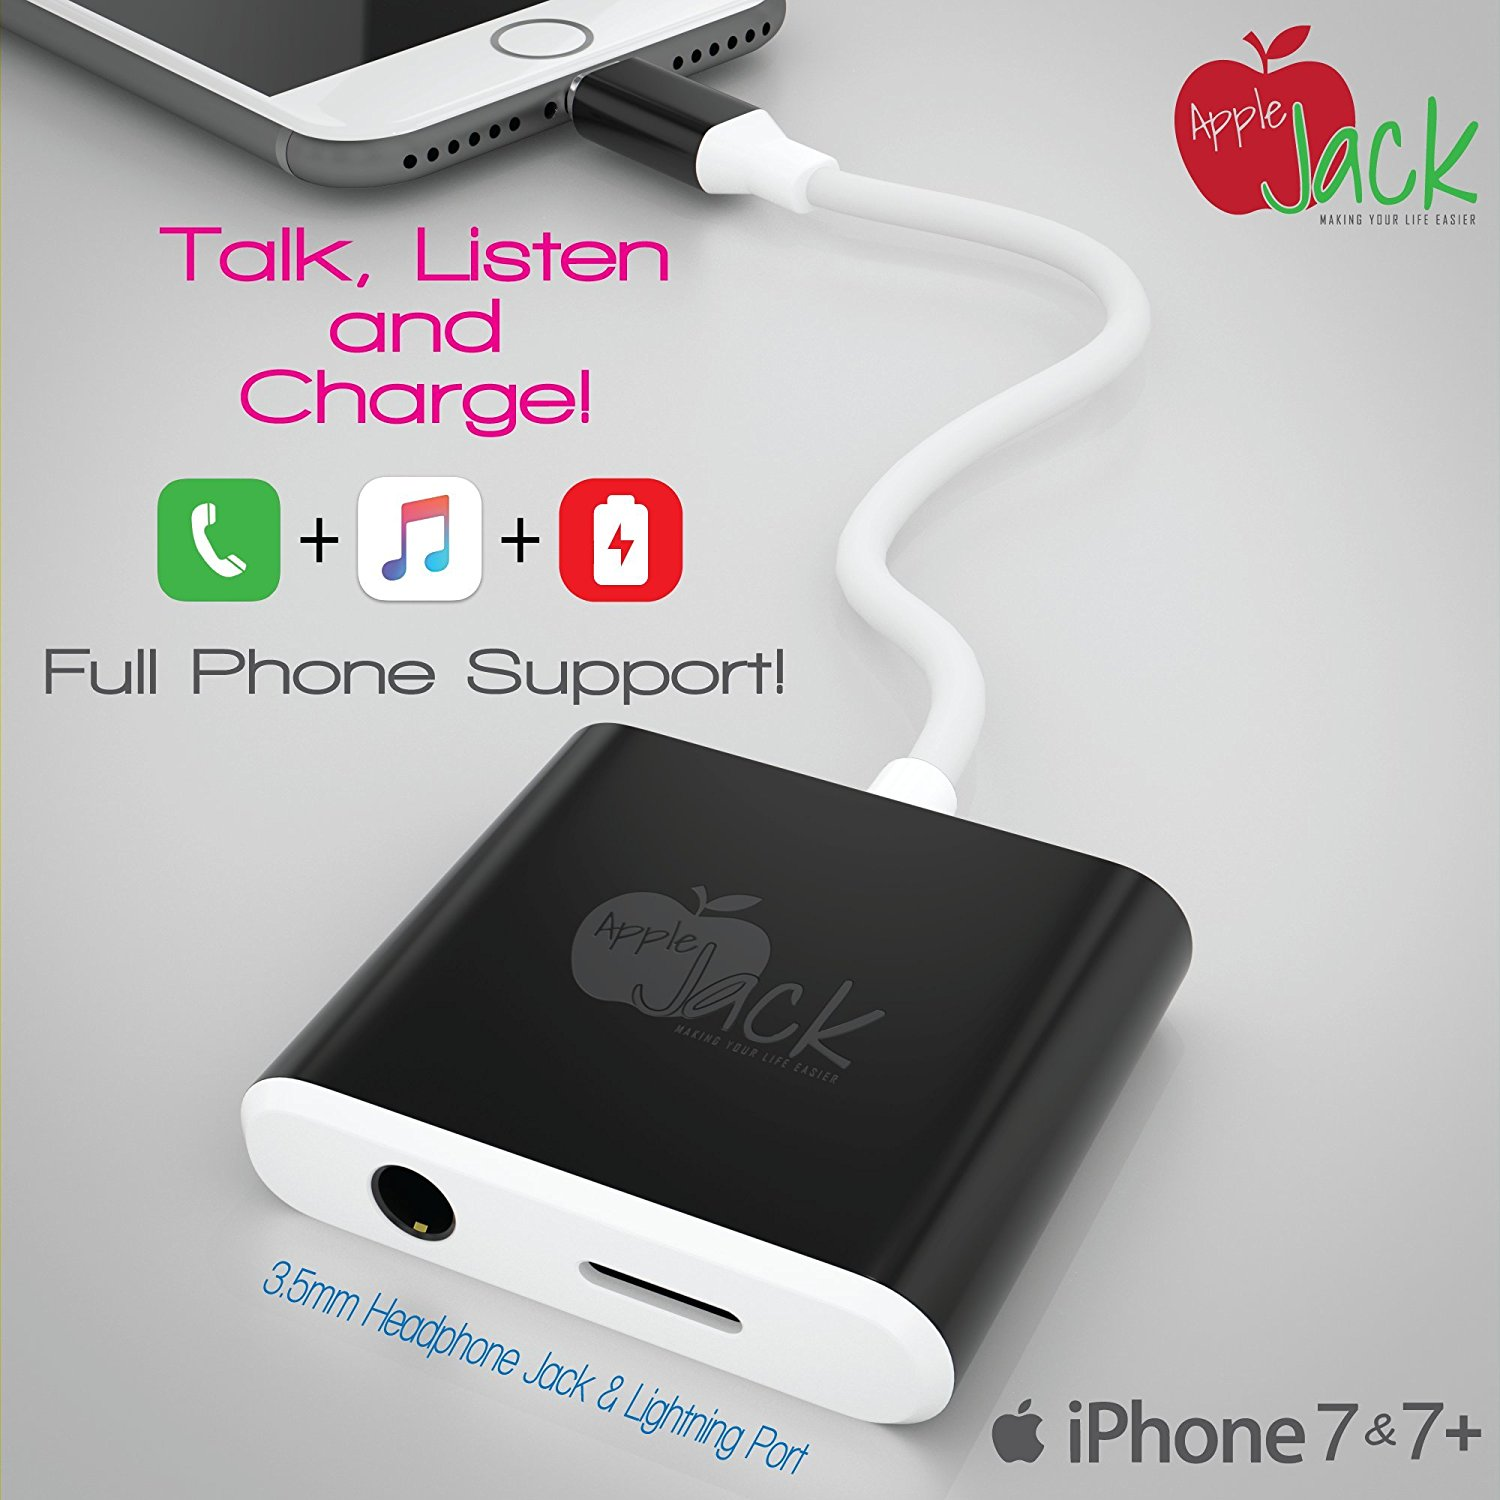 Iphone 7 Charger Headphone Splitter With Phone Support Lightning Adapter Black & Iphone 7 Charger Headphone Splitter With Phone Support Lightning ...